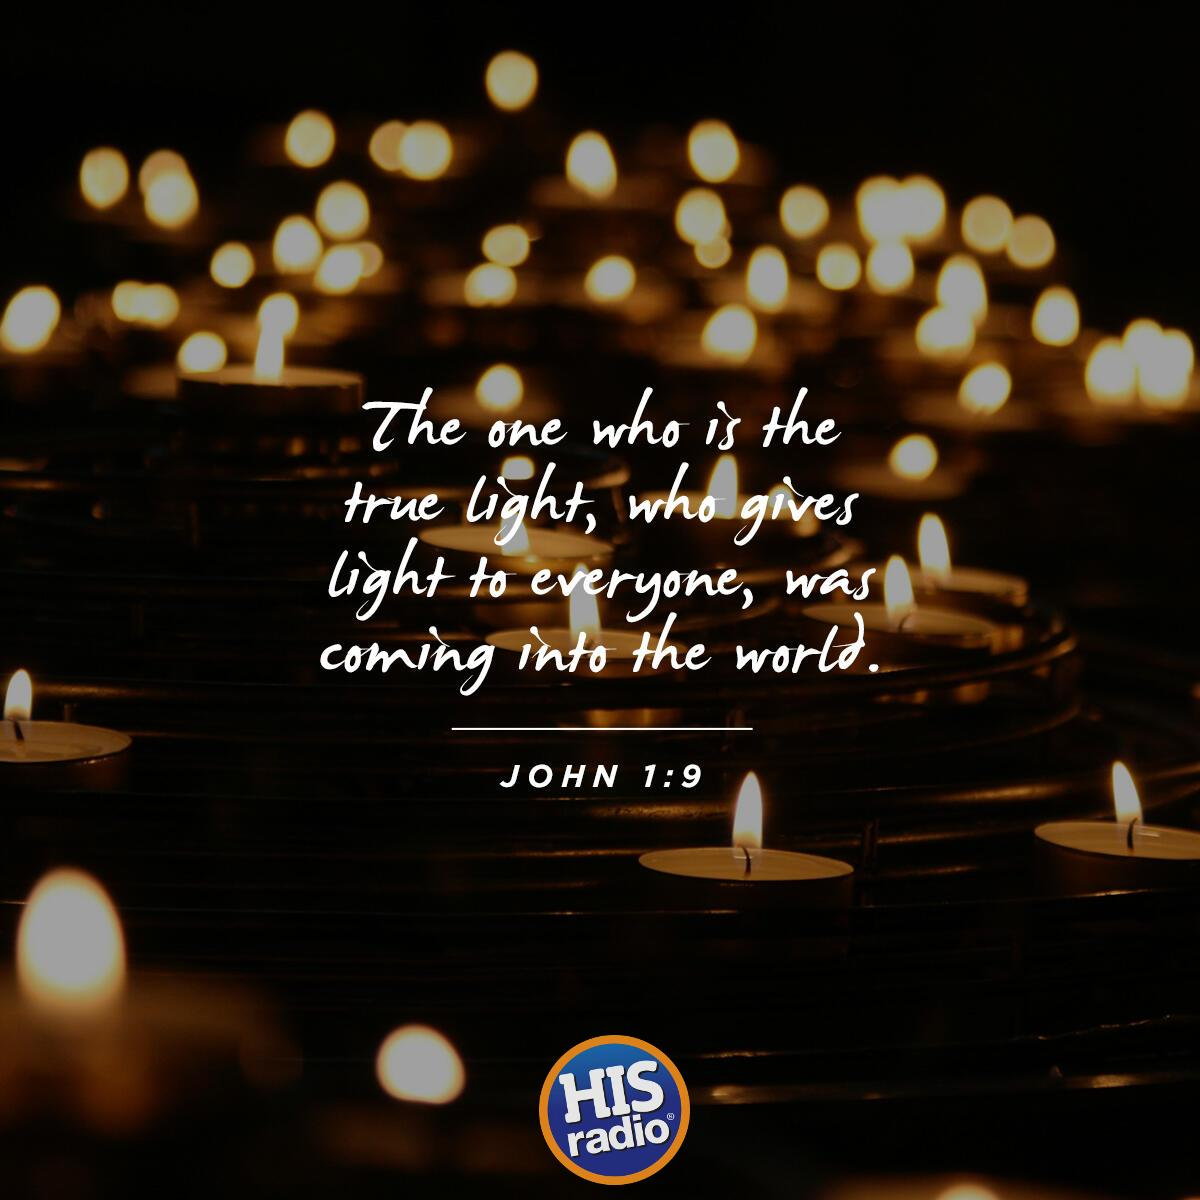 John 1:9 - Verse of the Day